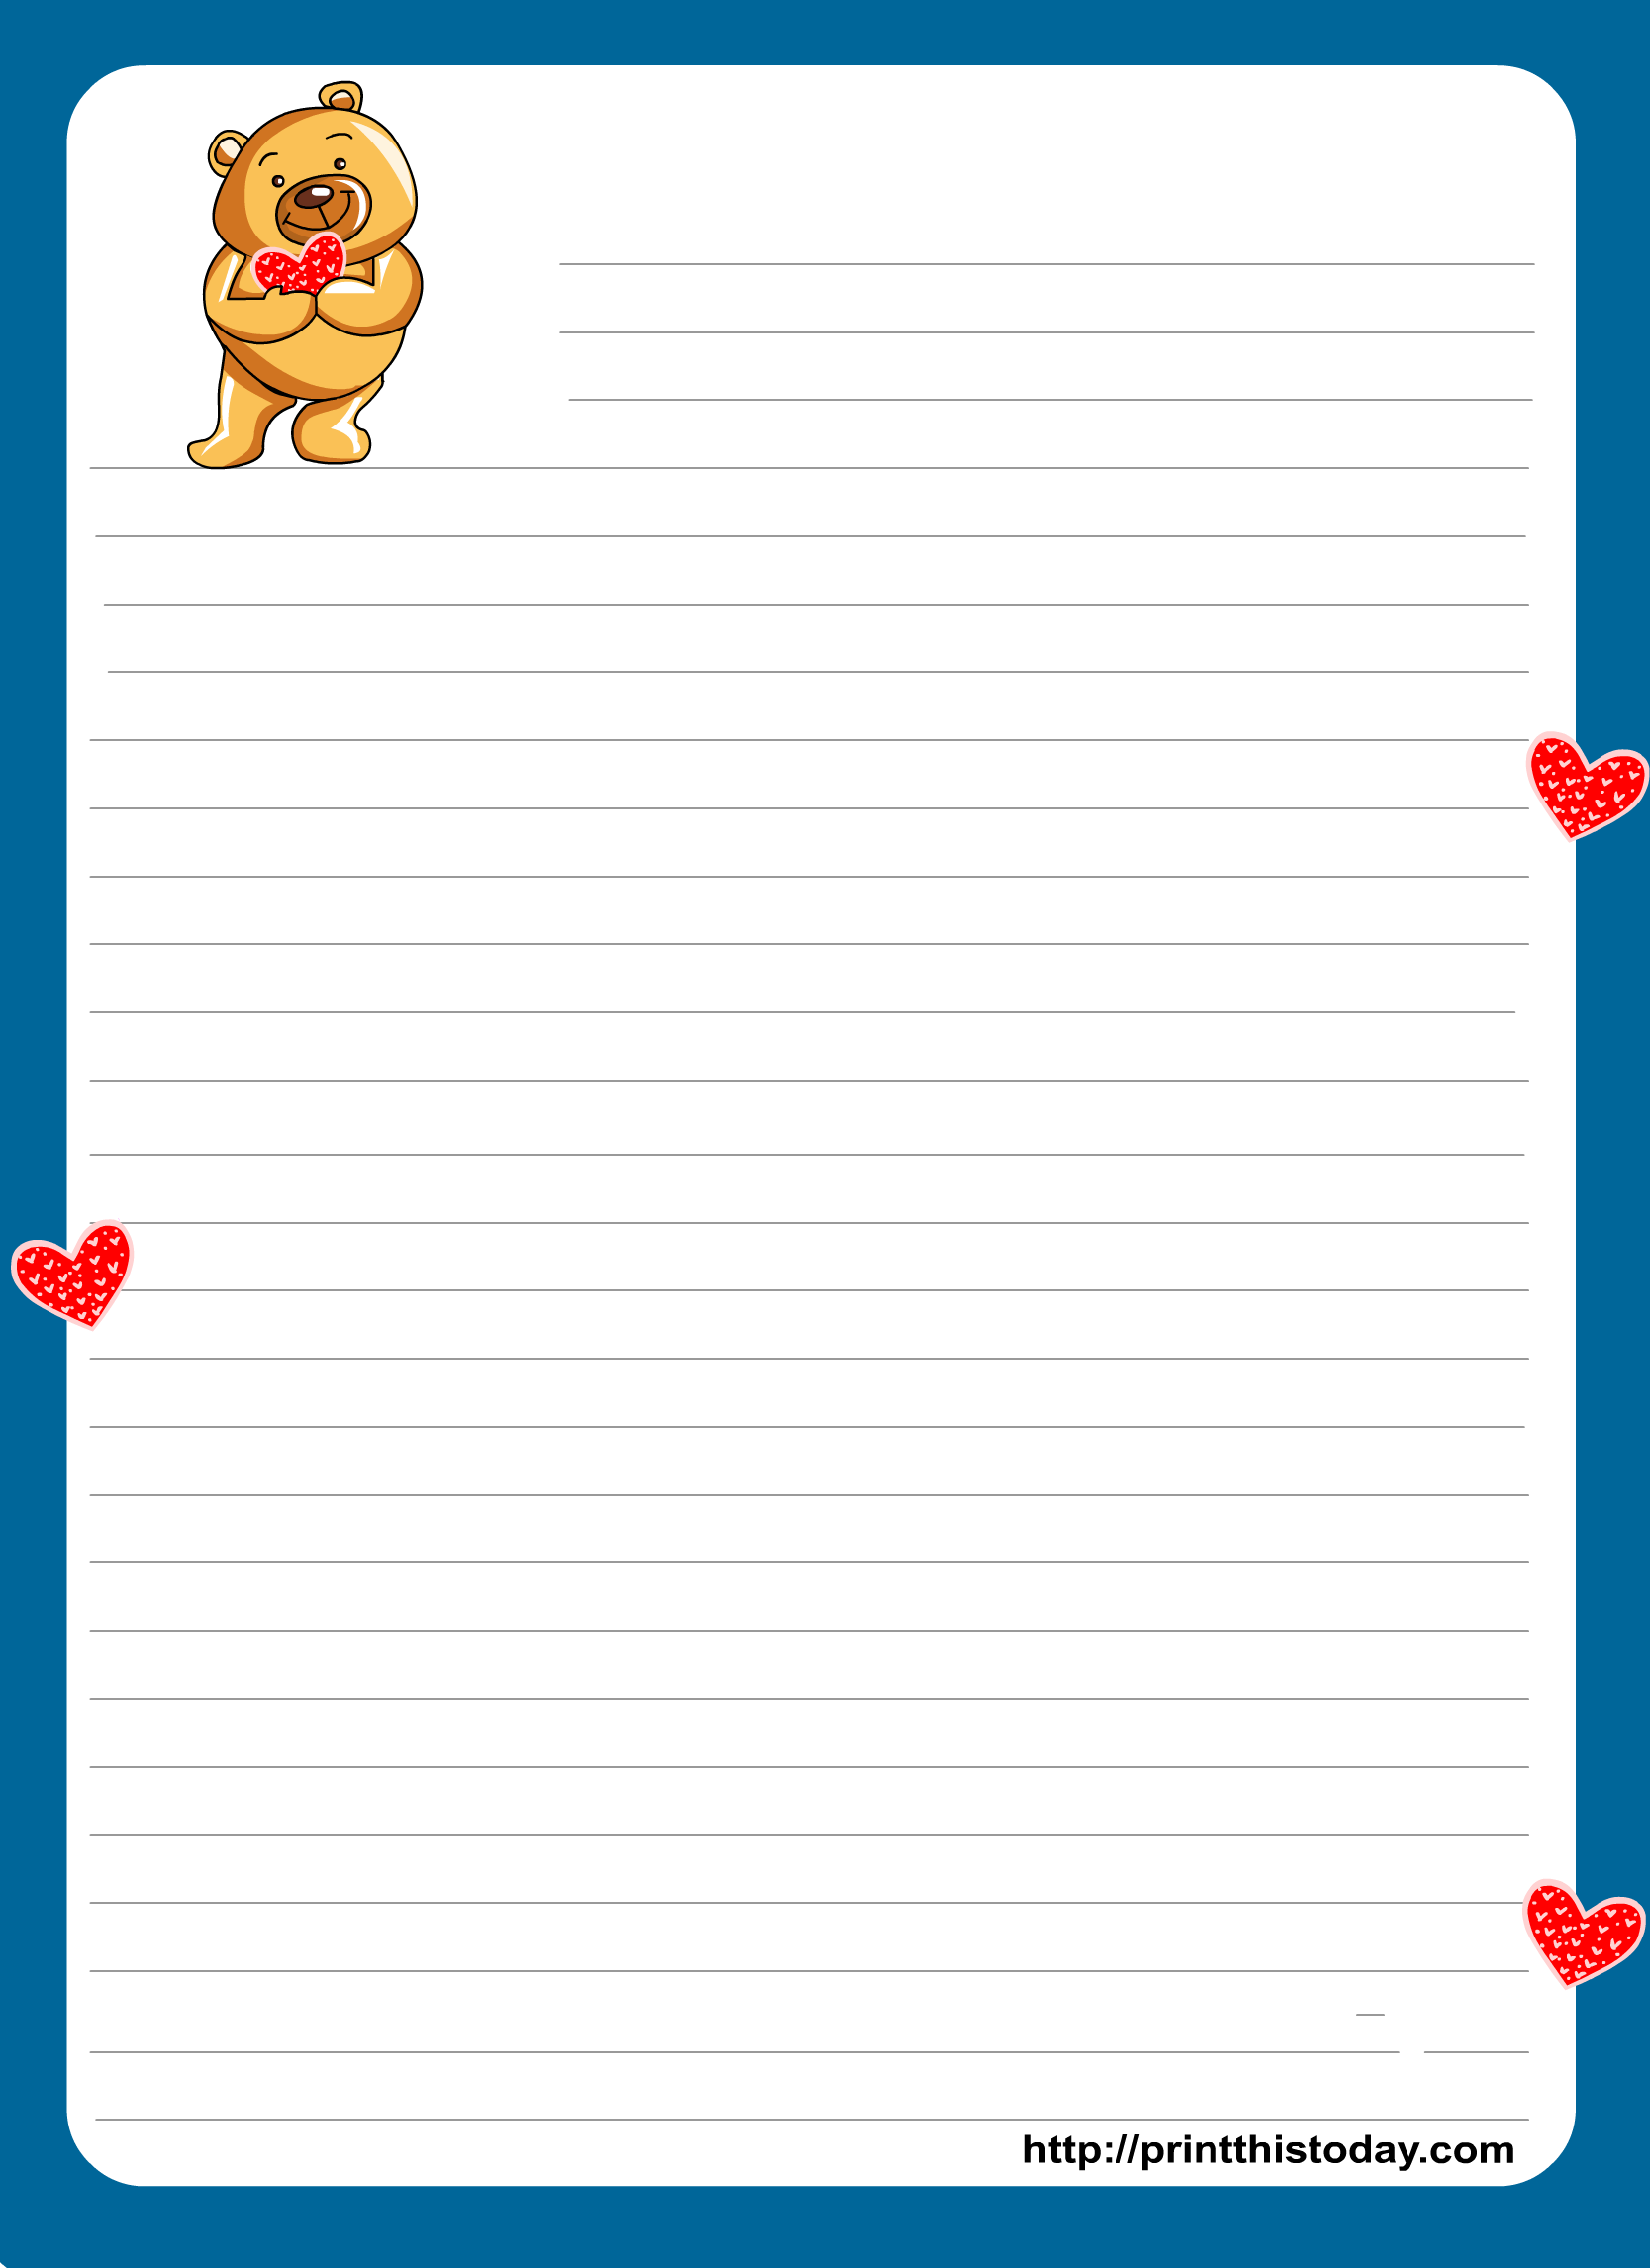 teddy bear writing paper for kids - Papers For Kids